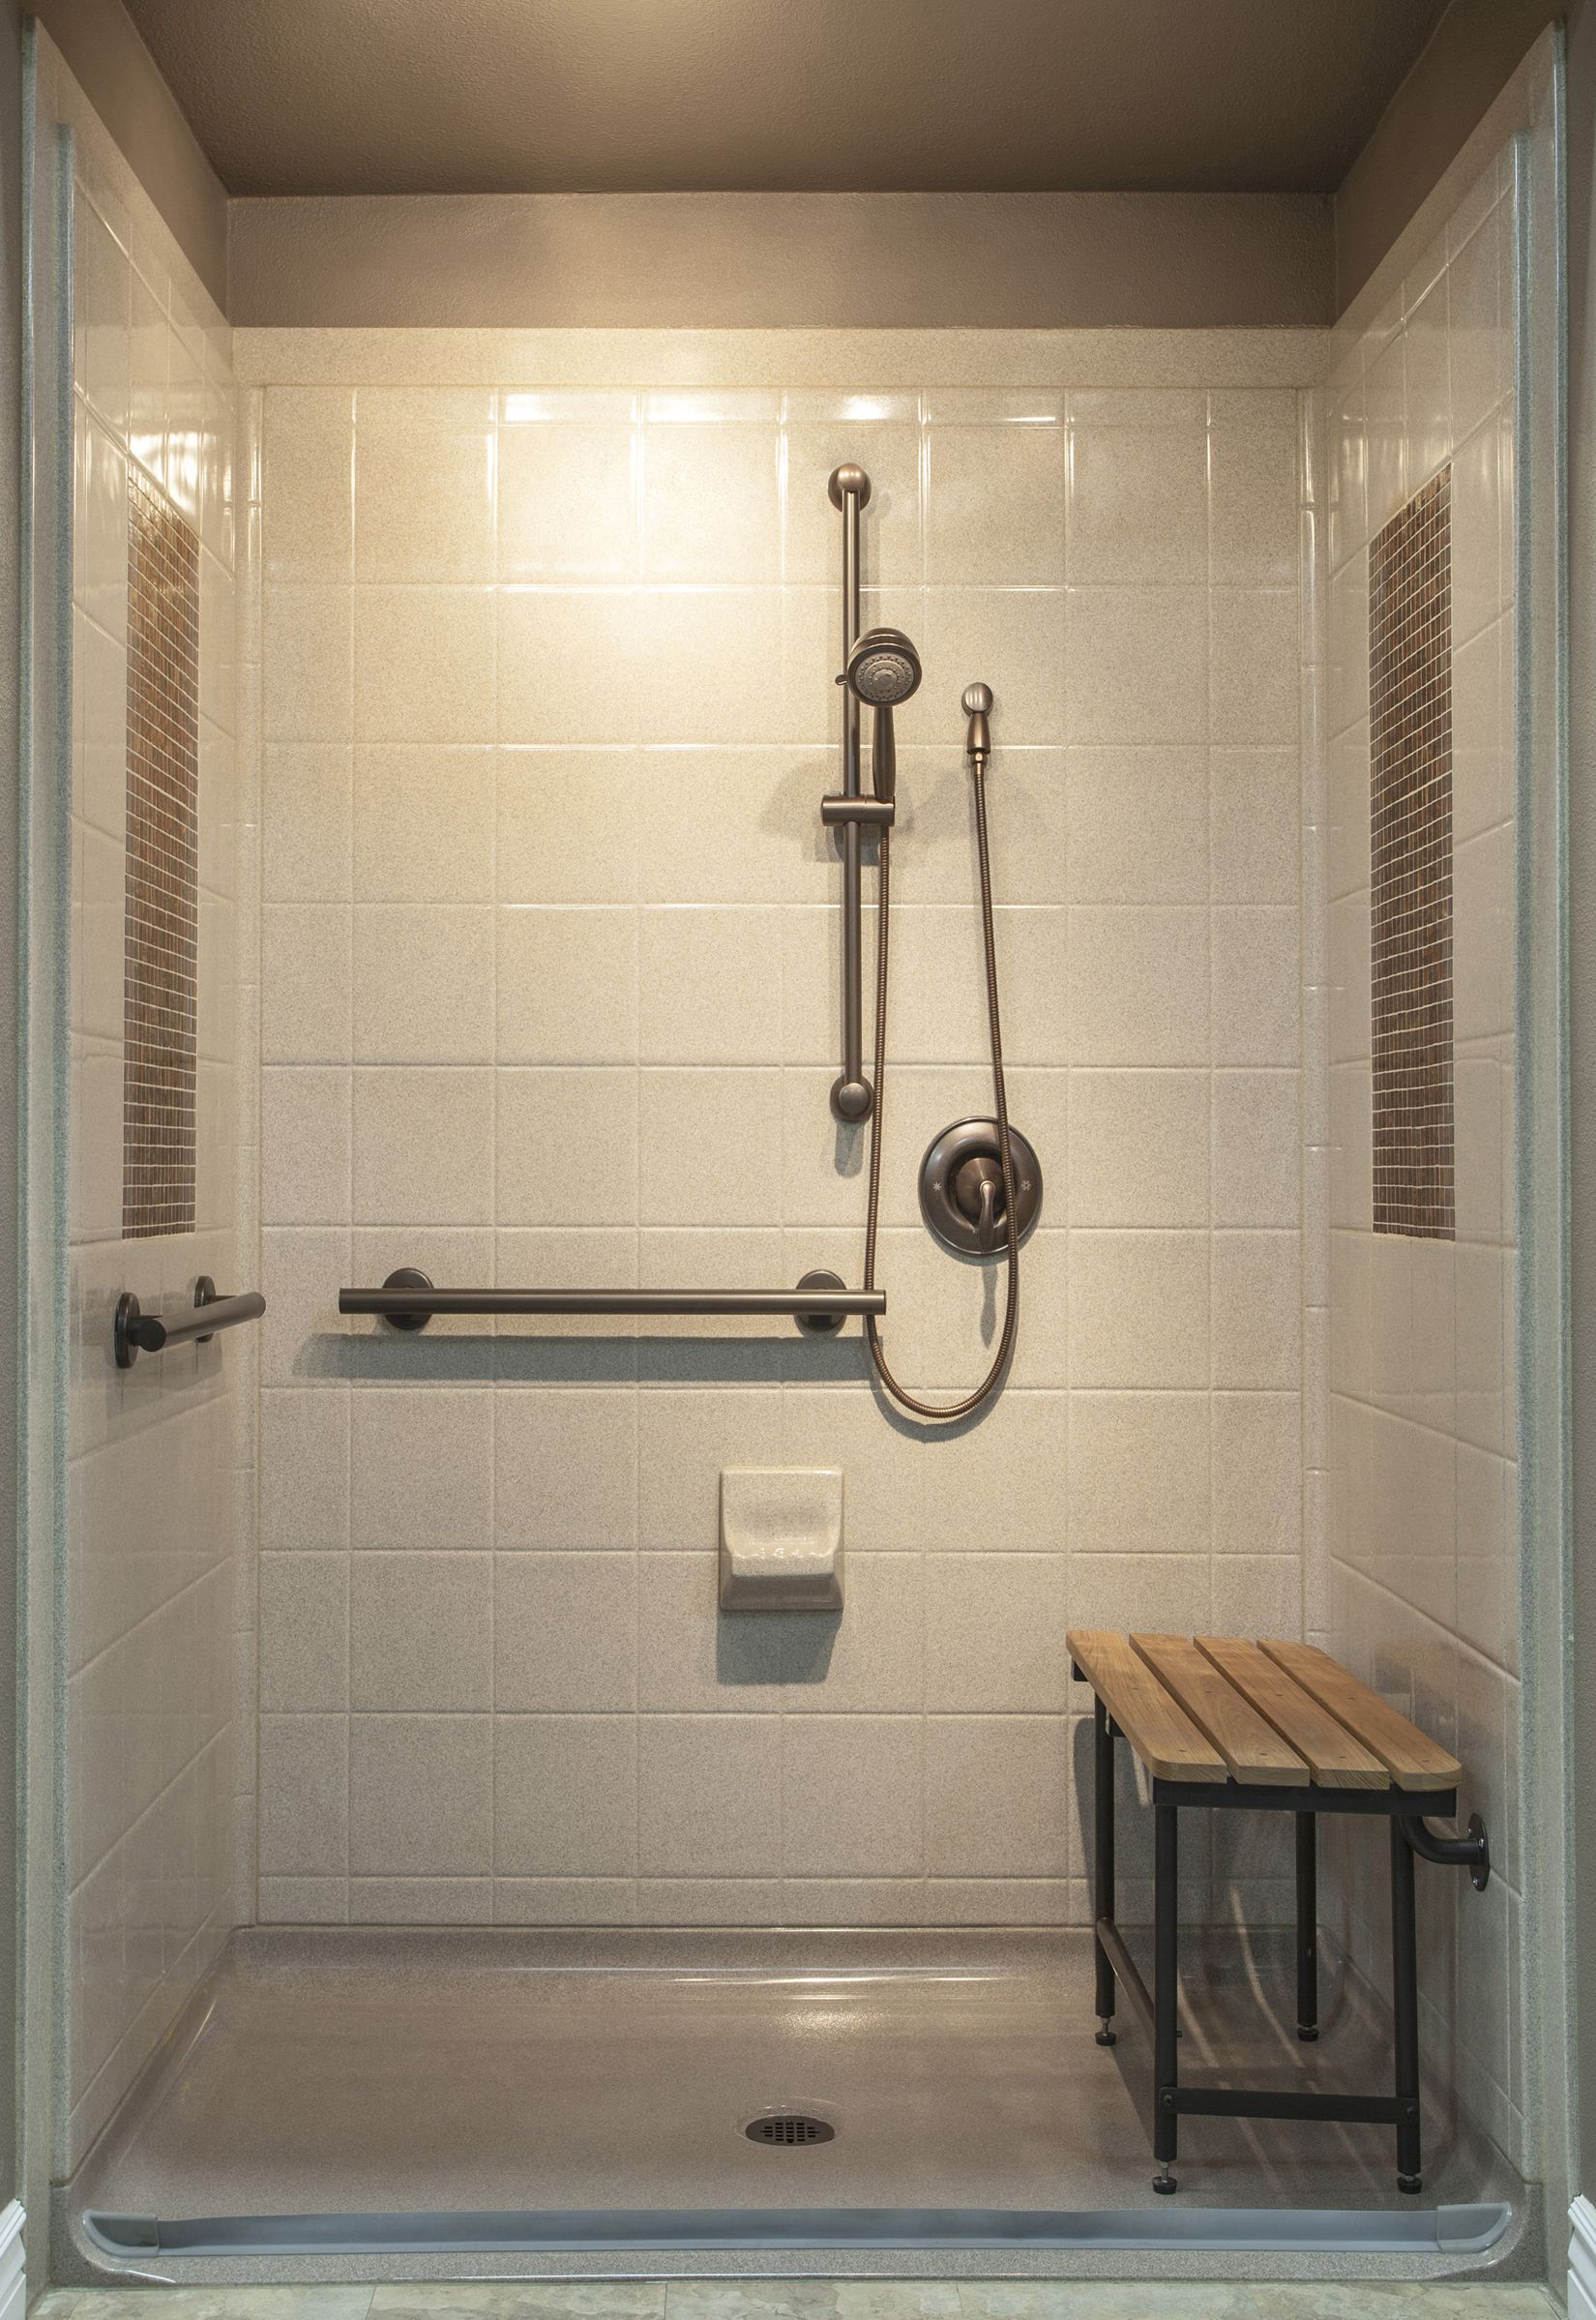 Best Bath Systemu0027s Designer Series Shower. A Composite Shower With Tile  Inlay For The Look